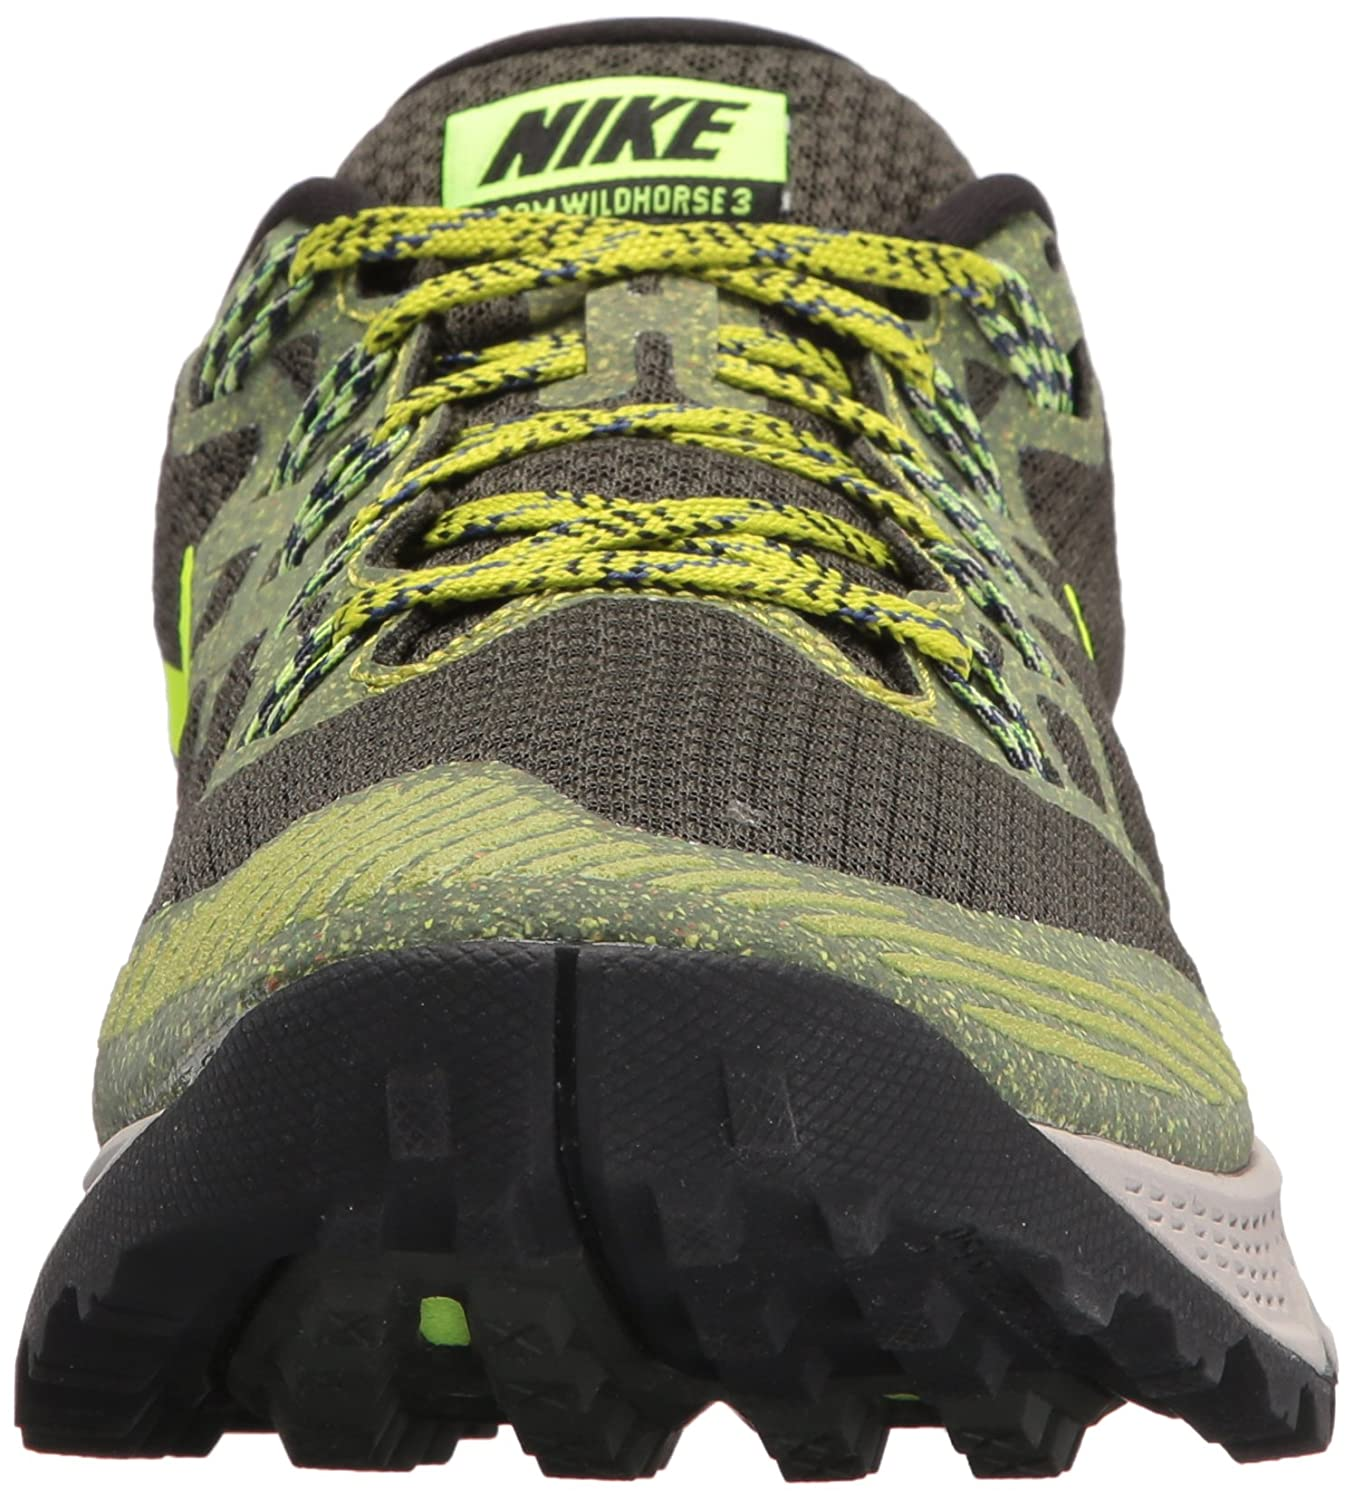 b3f59630fbdc Nike Men s Air Zoom Wildhorse 3 Sequoia Volt Bright Cactus Running Shoe 8  Men US  Buy Online at Low Prices in India - Amazon.in